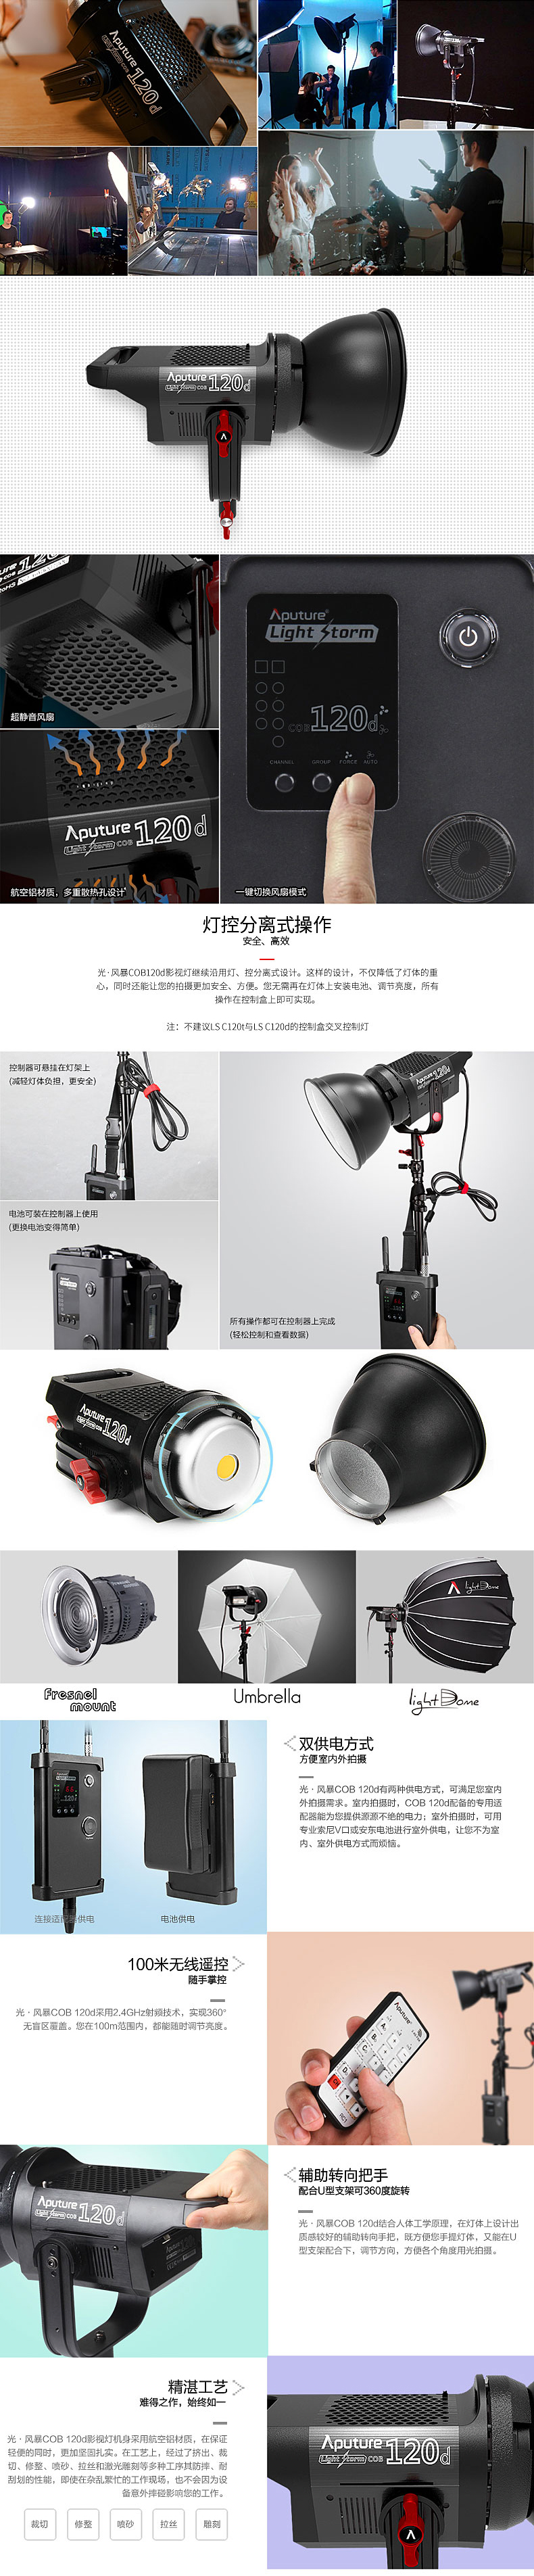 aputure-120d-daylight-light-description-yingkee.jpg